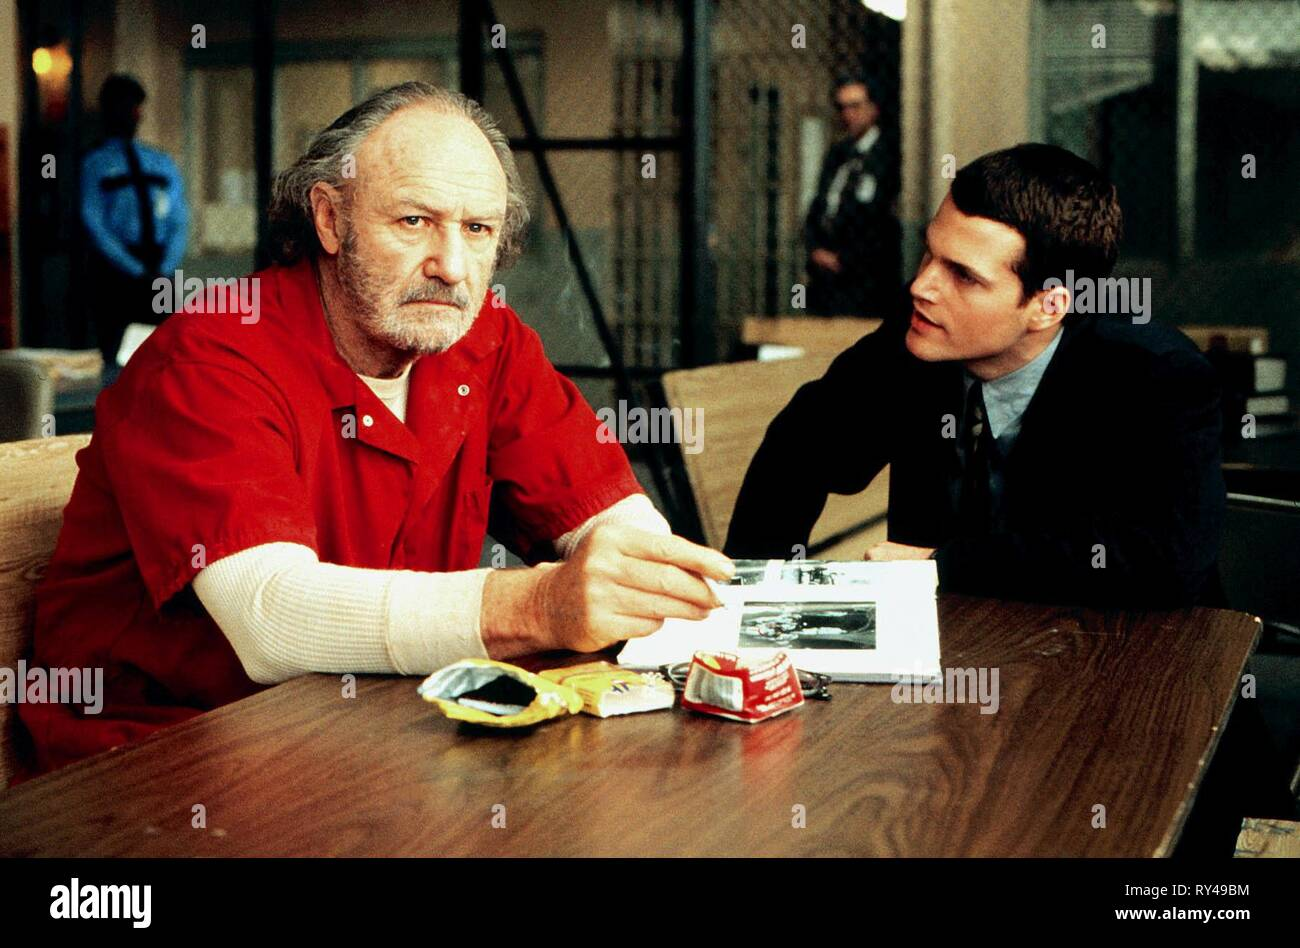 HACKMAN,O'DONNELL, THE CHAMBER, 1996 - Stock Image